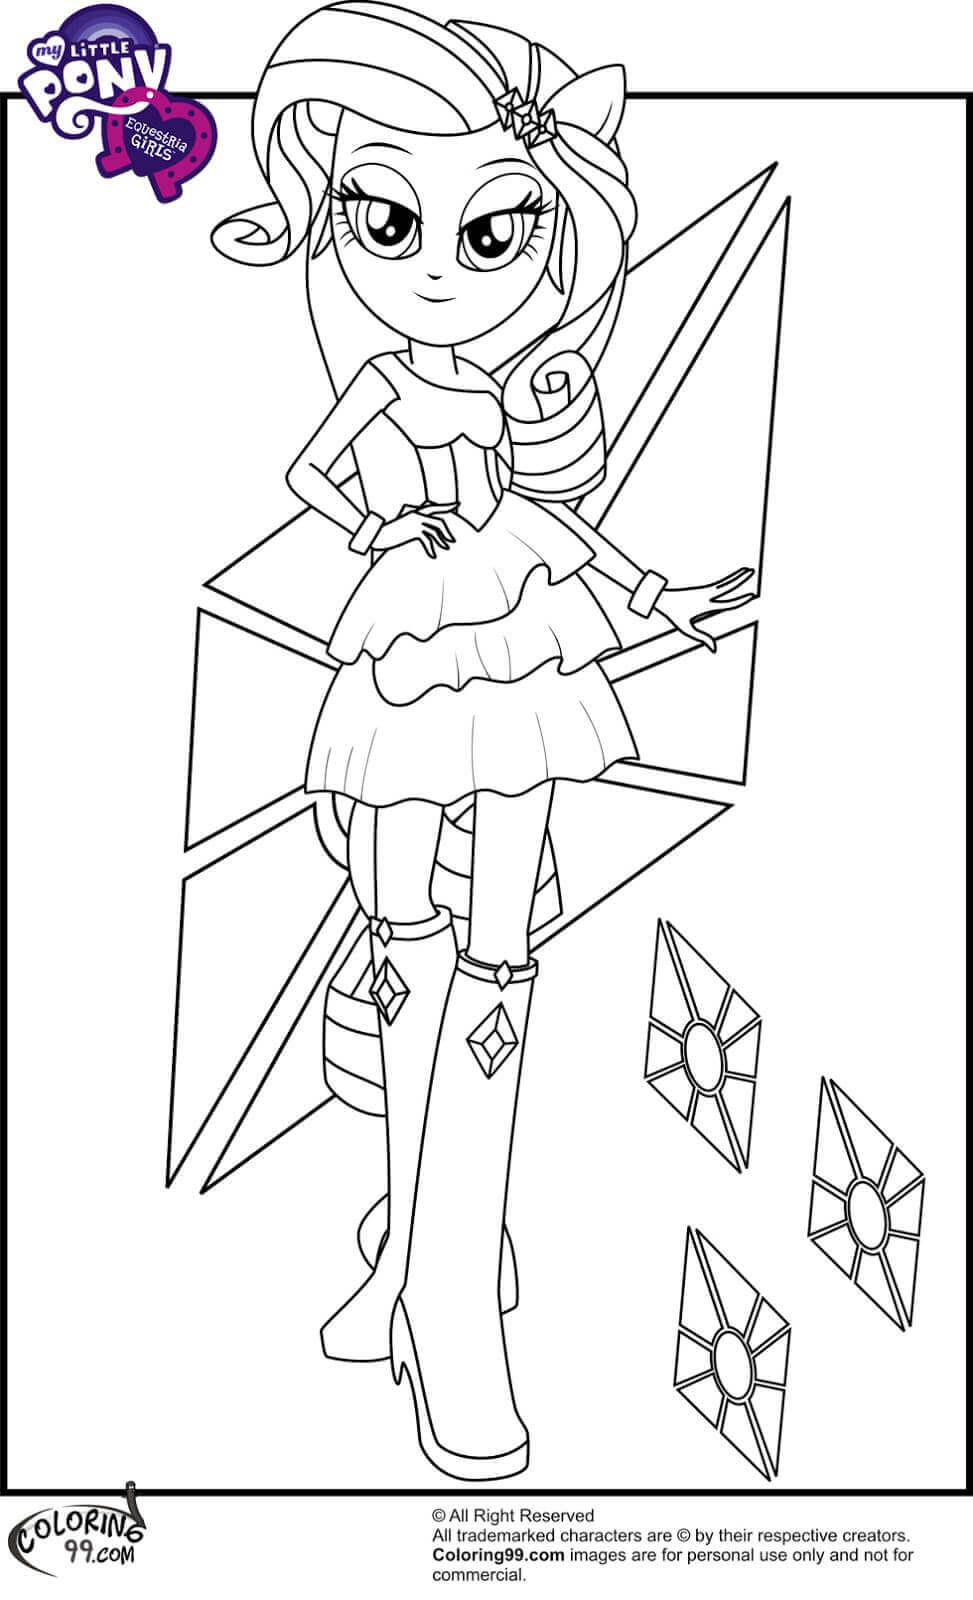 Equestria Girls Ausmalbilder  15 Printable My Little Pony Equestria Girls Coloring Pages